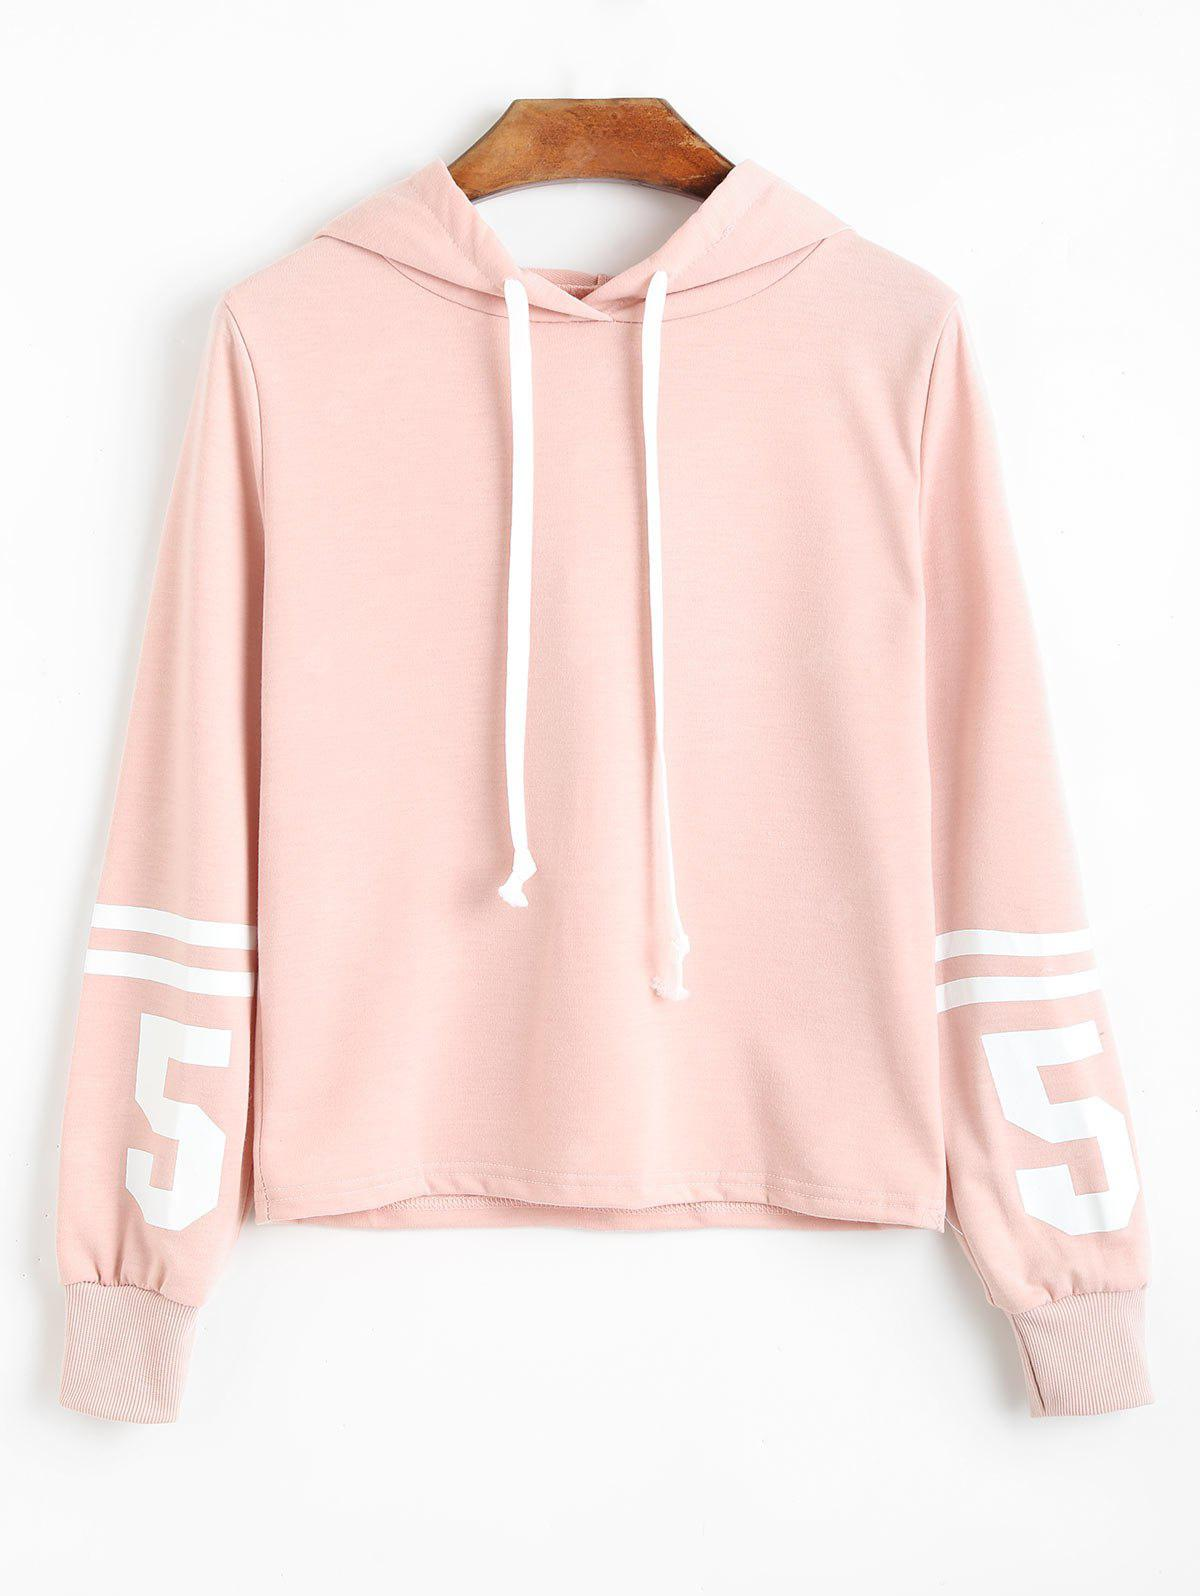 Striped Number Drawstring Hoodie